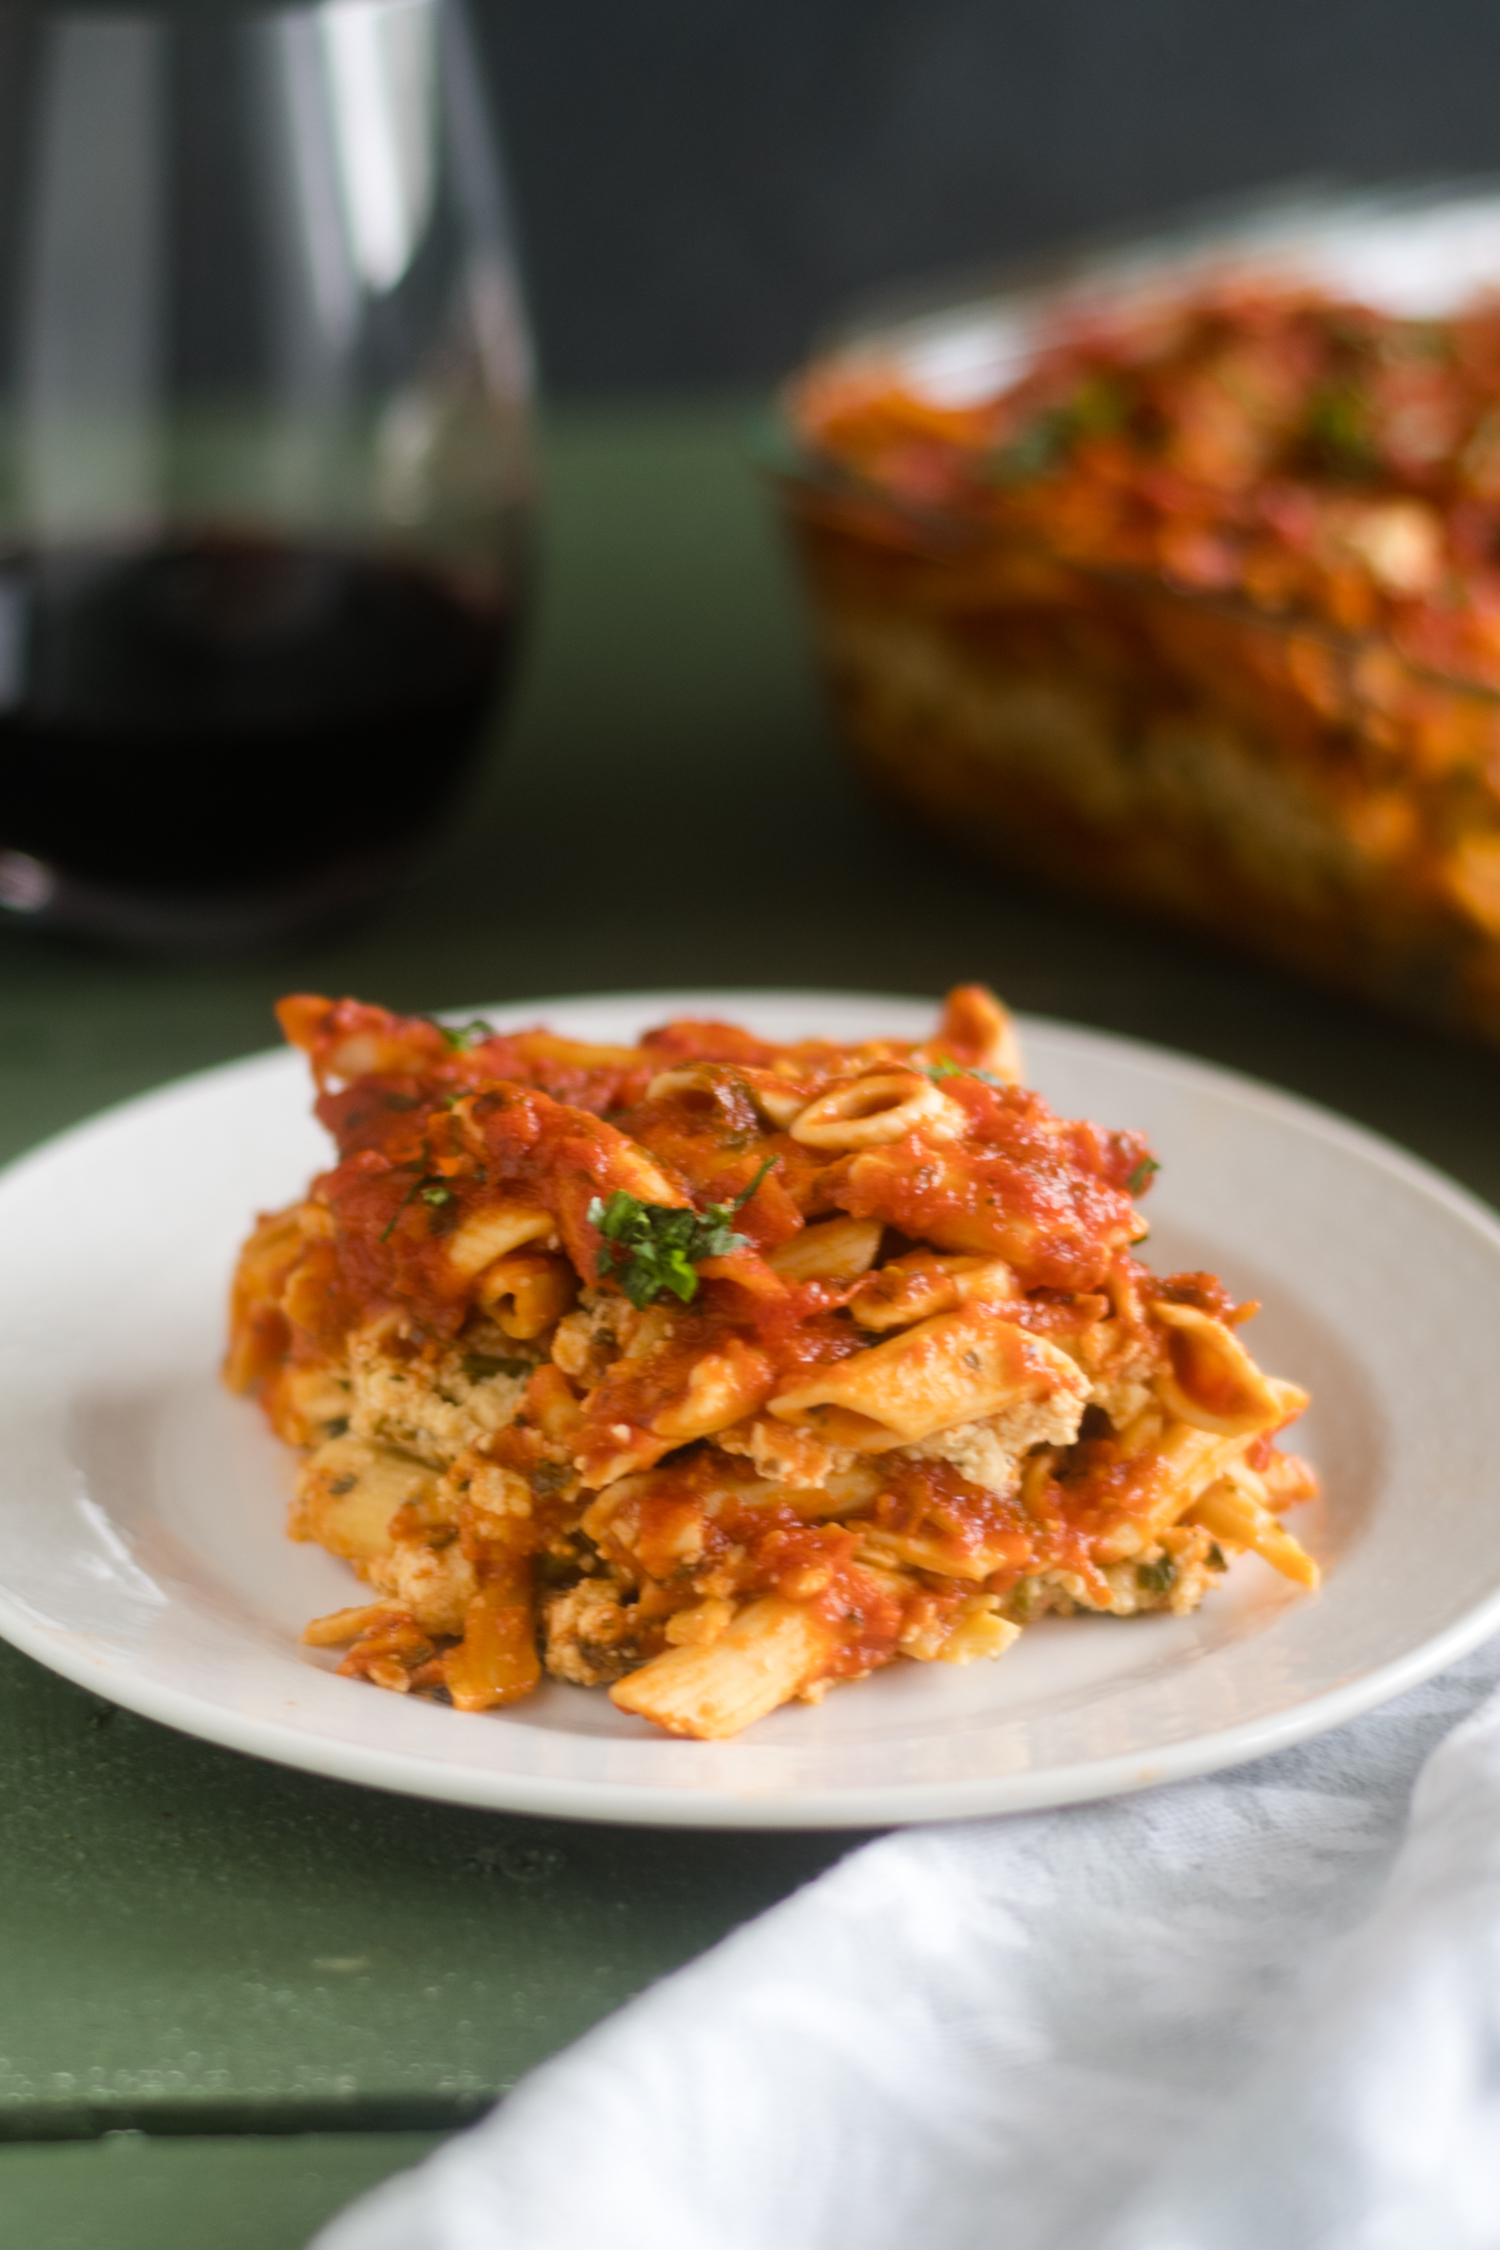 This Vegan Baked Pasta with Tofu Ricotta is perfect if you are looking for an easy, budget-friendly meal that is also delicious!#vegan #pasta #recipe #food #casserole #tofu #glutenfree #vegetarian